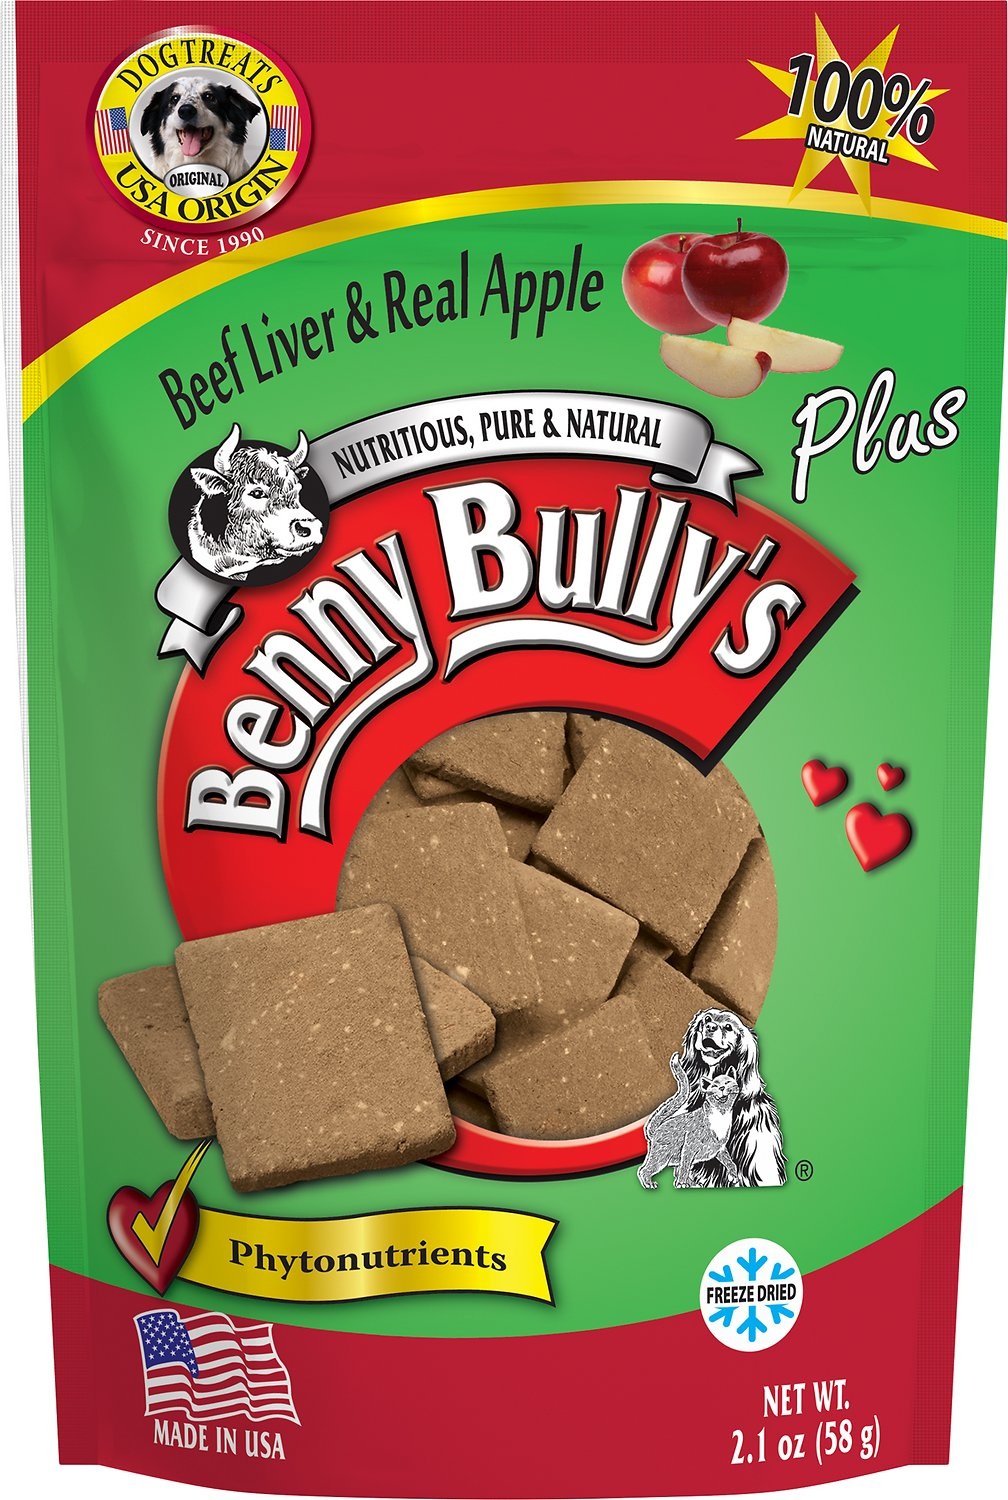 Benny Bully's Liver Plus Beef Liver & Real Apple Freeze-Dried Dog Treats, 2.1-oz